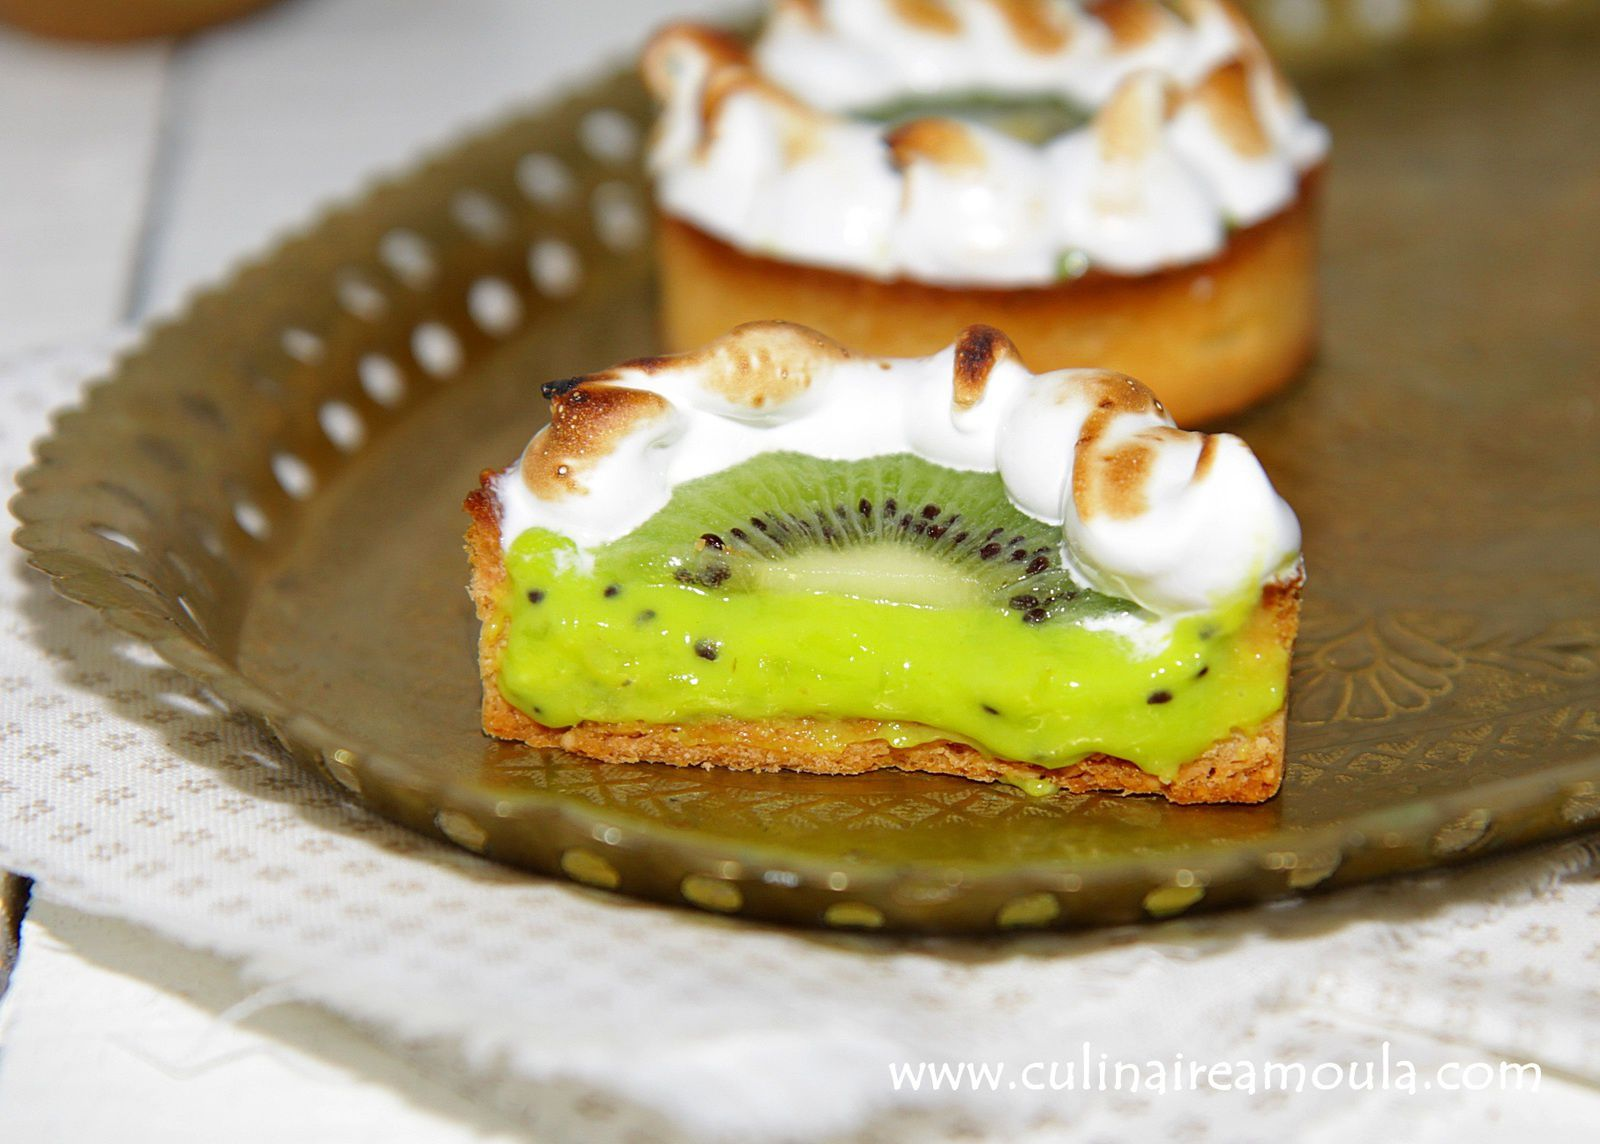 tarte aux kiwis meringu e culinaire amoula. Black Bedroom Furniture Sets. Home Design Ideas